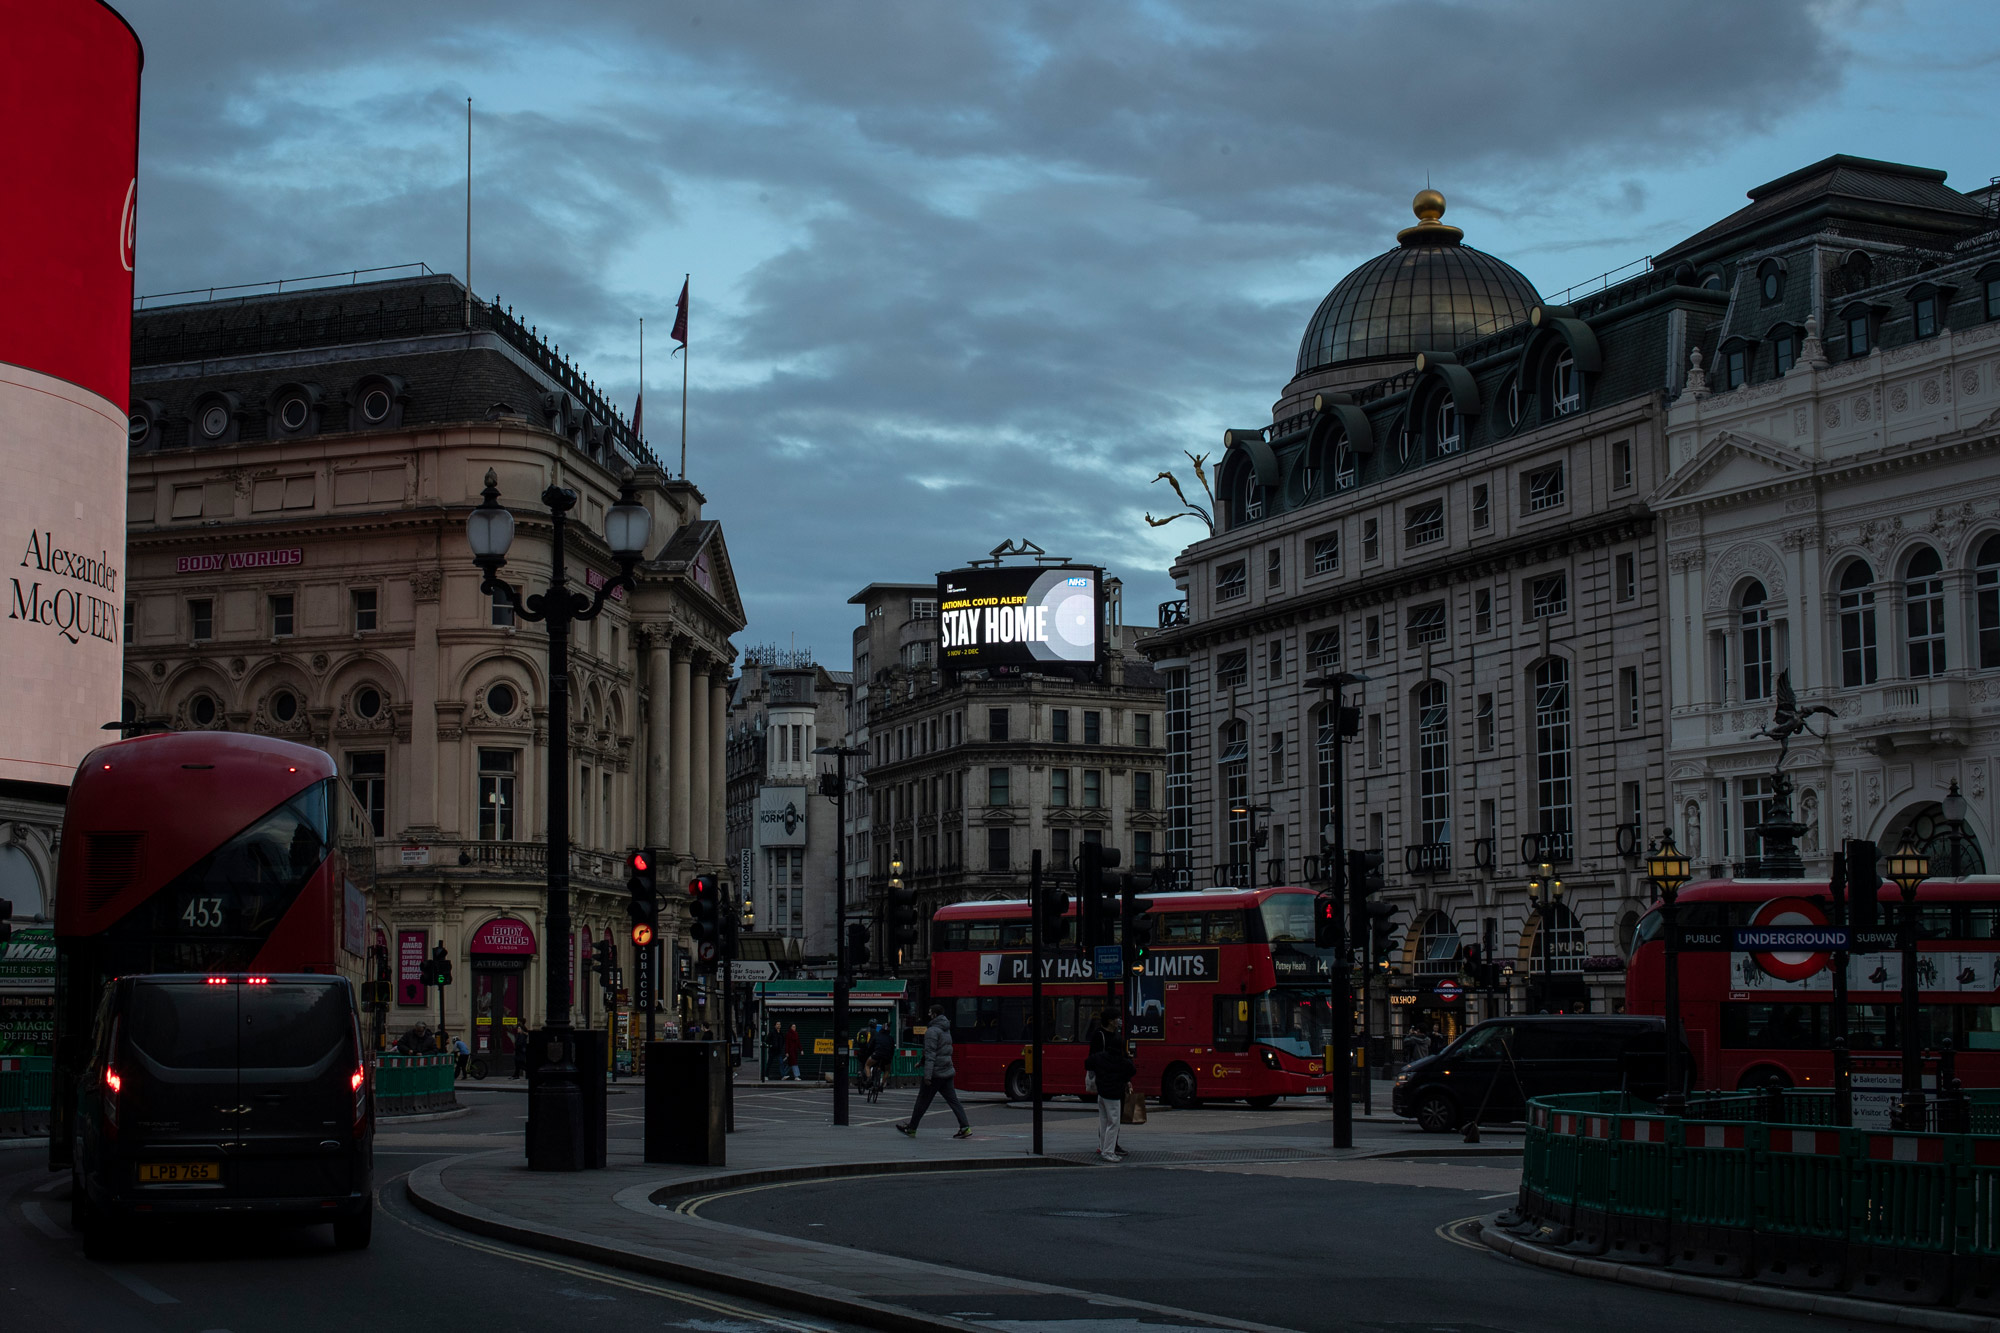 A public service notice encouraging people to stay home is displayed over Picadilly Circus on November 9 in London.